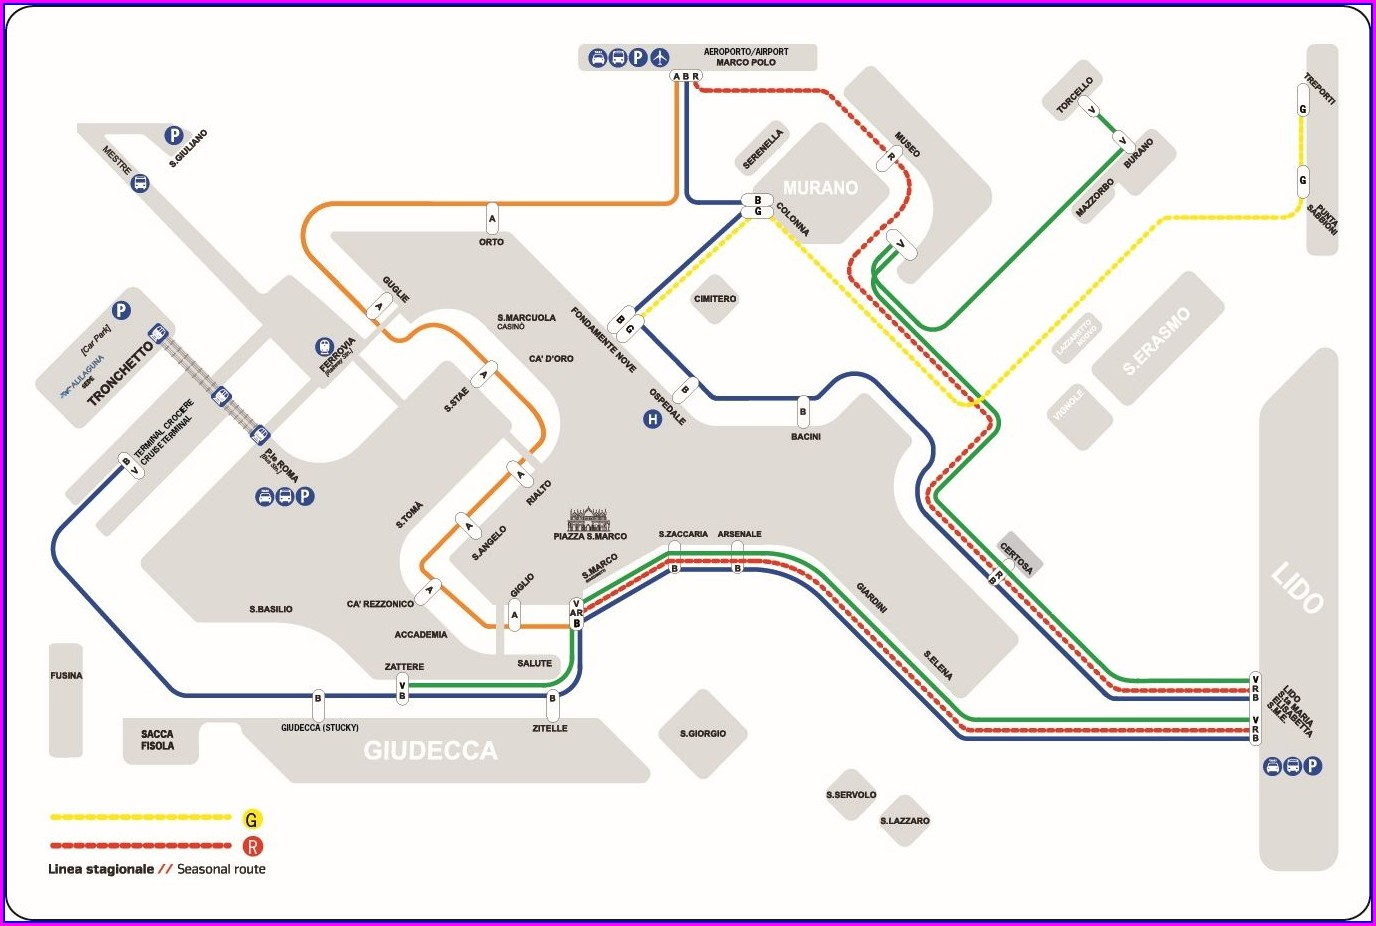 Marco Polo Venice Airport Map